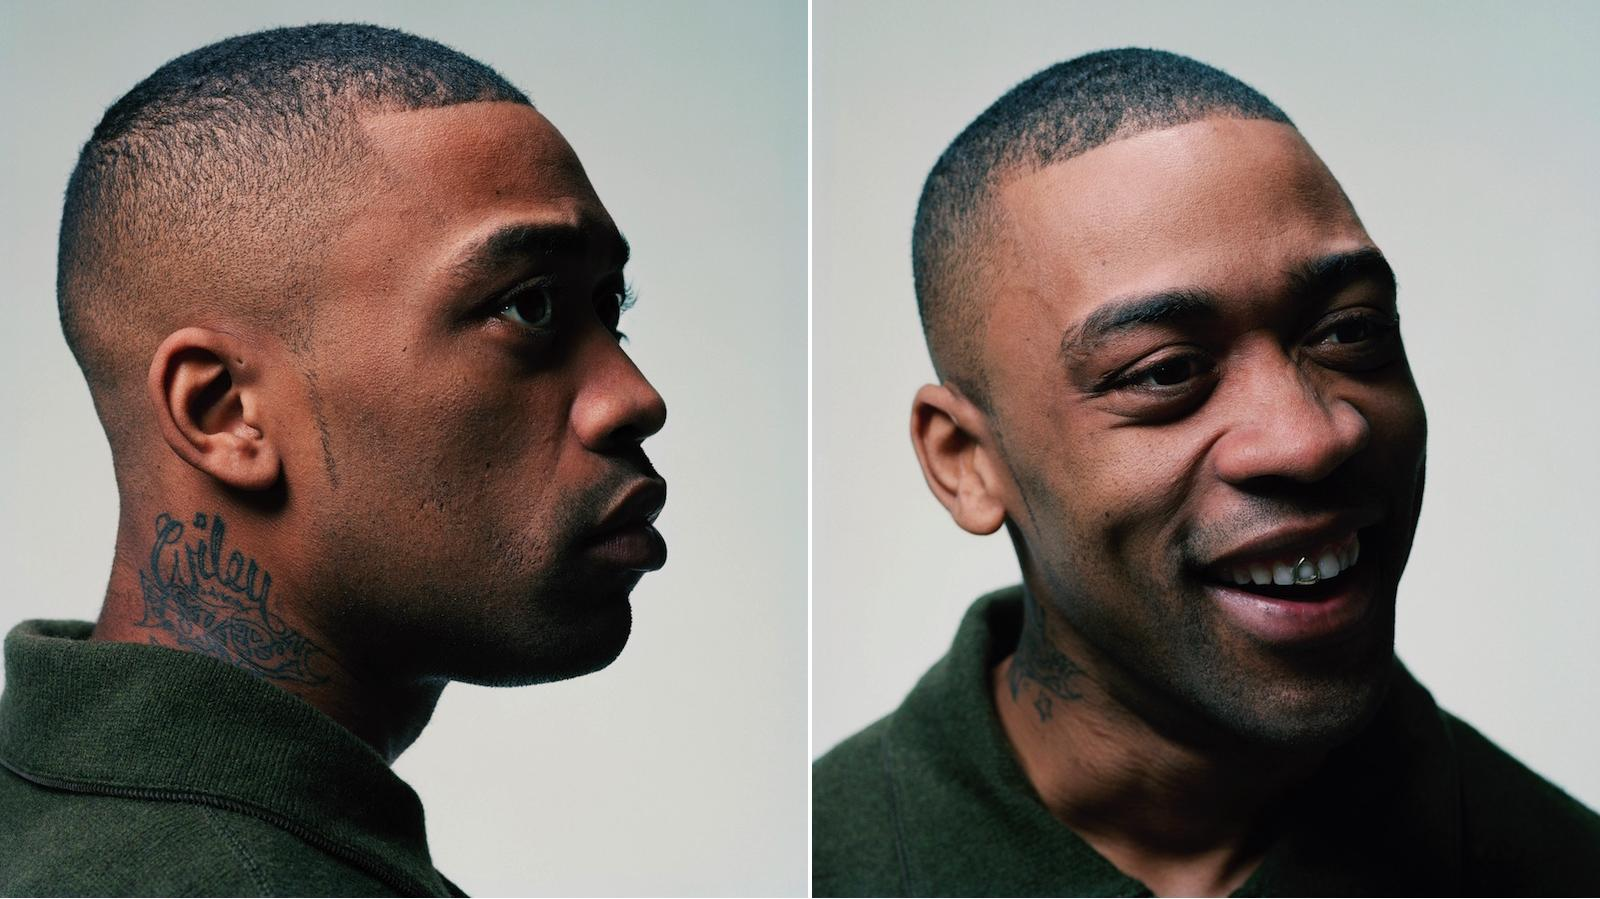 Wiley: Wiley Has Been Awarded An MBE For His Services To Music